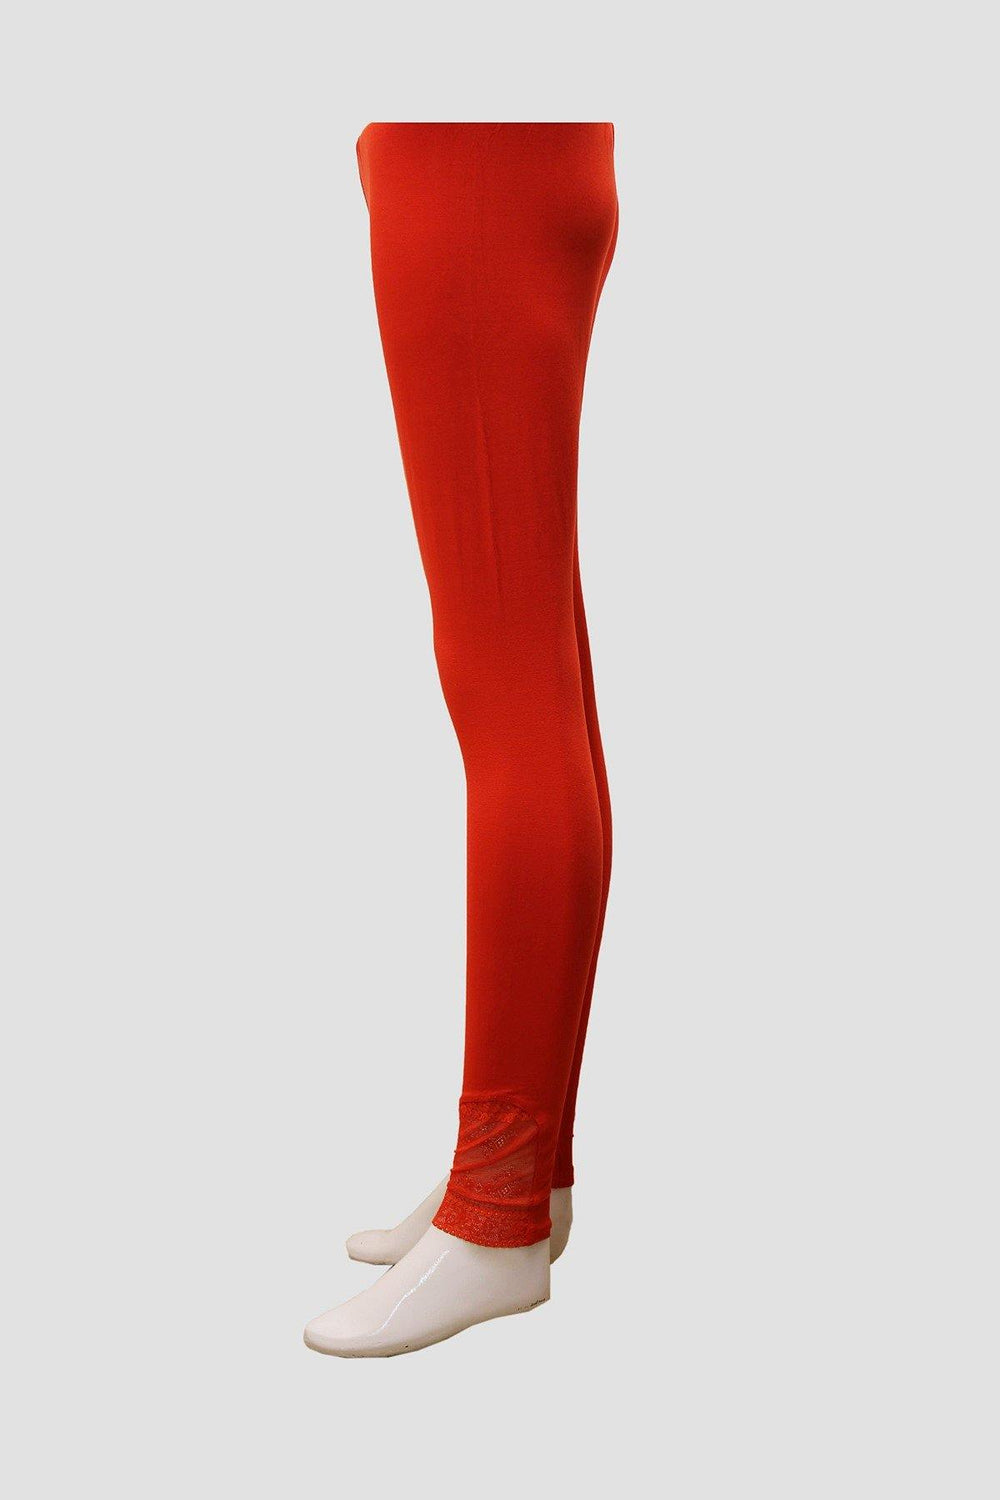 Ankle Lace Cotton Tights - Red - Brandsea UK